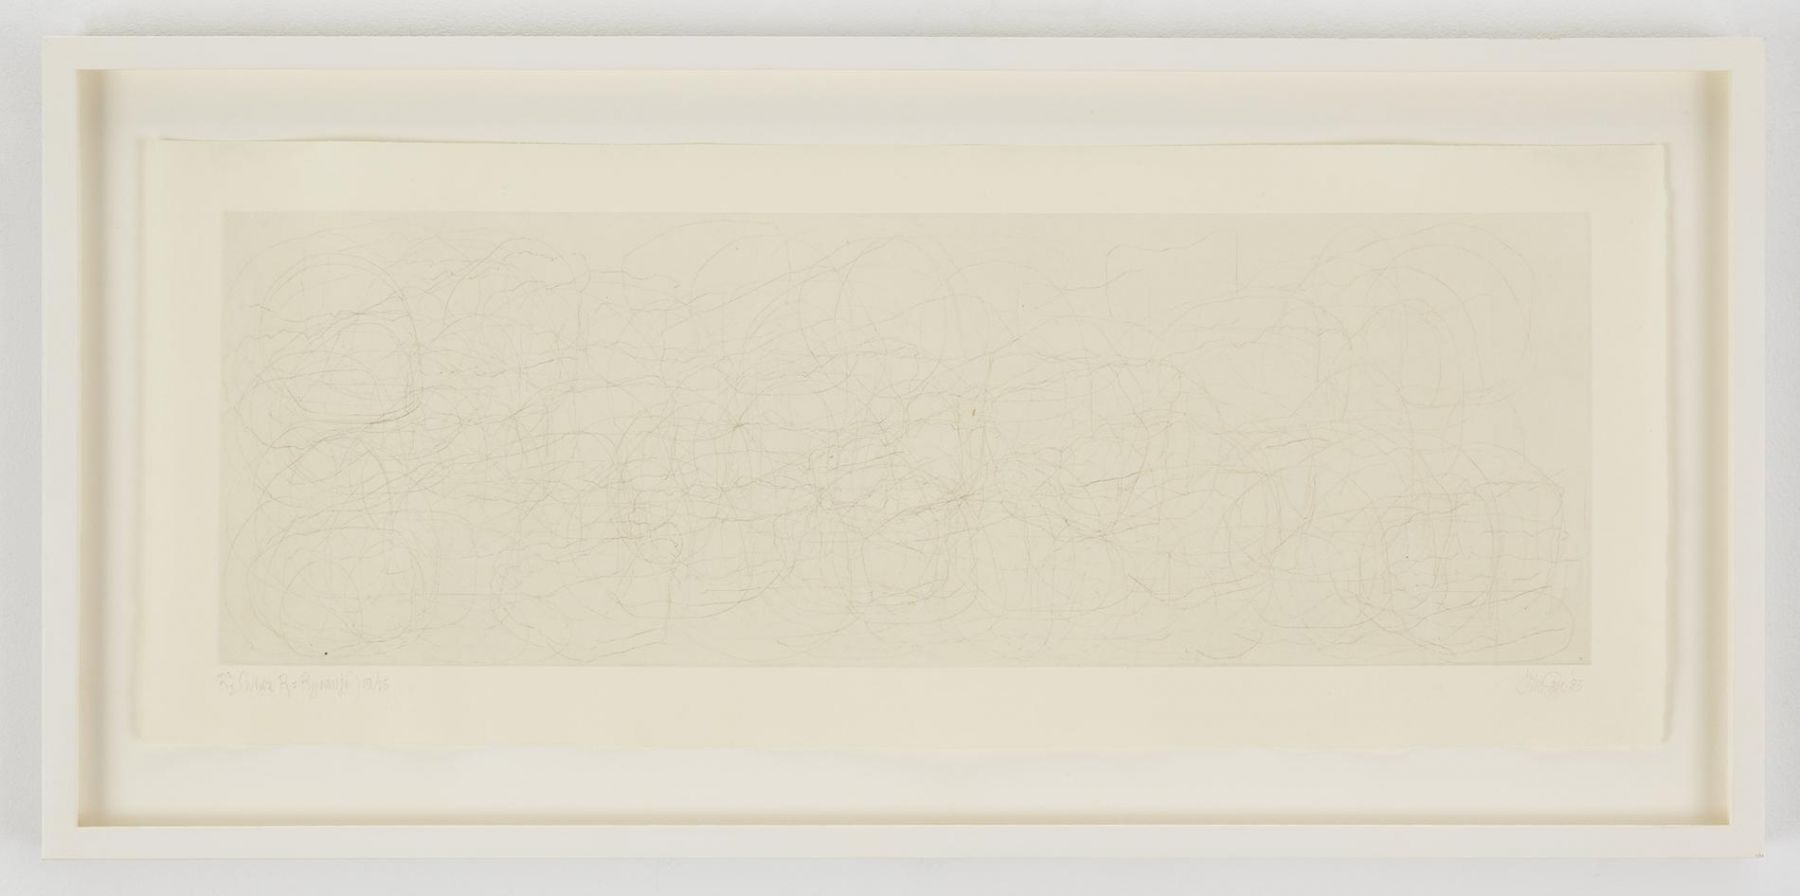 , JOHN CAGE (Where R = Ryoanji), 1983 Drypoint, Set of 4 Each: 9 1/4 x 23 1/4 in. (23.5 x 59 cm) Edition of 25